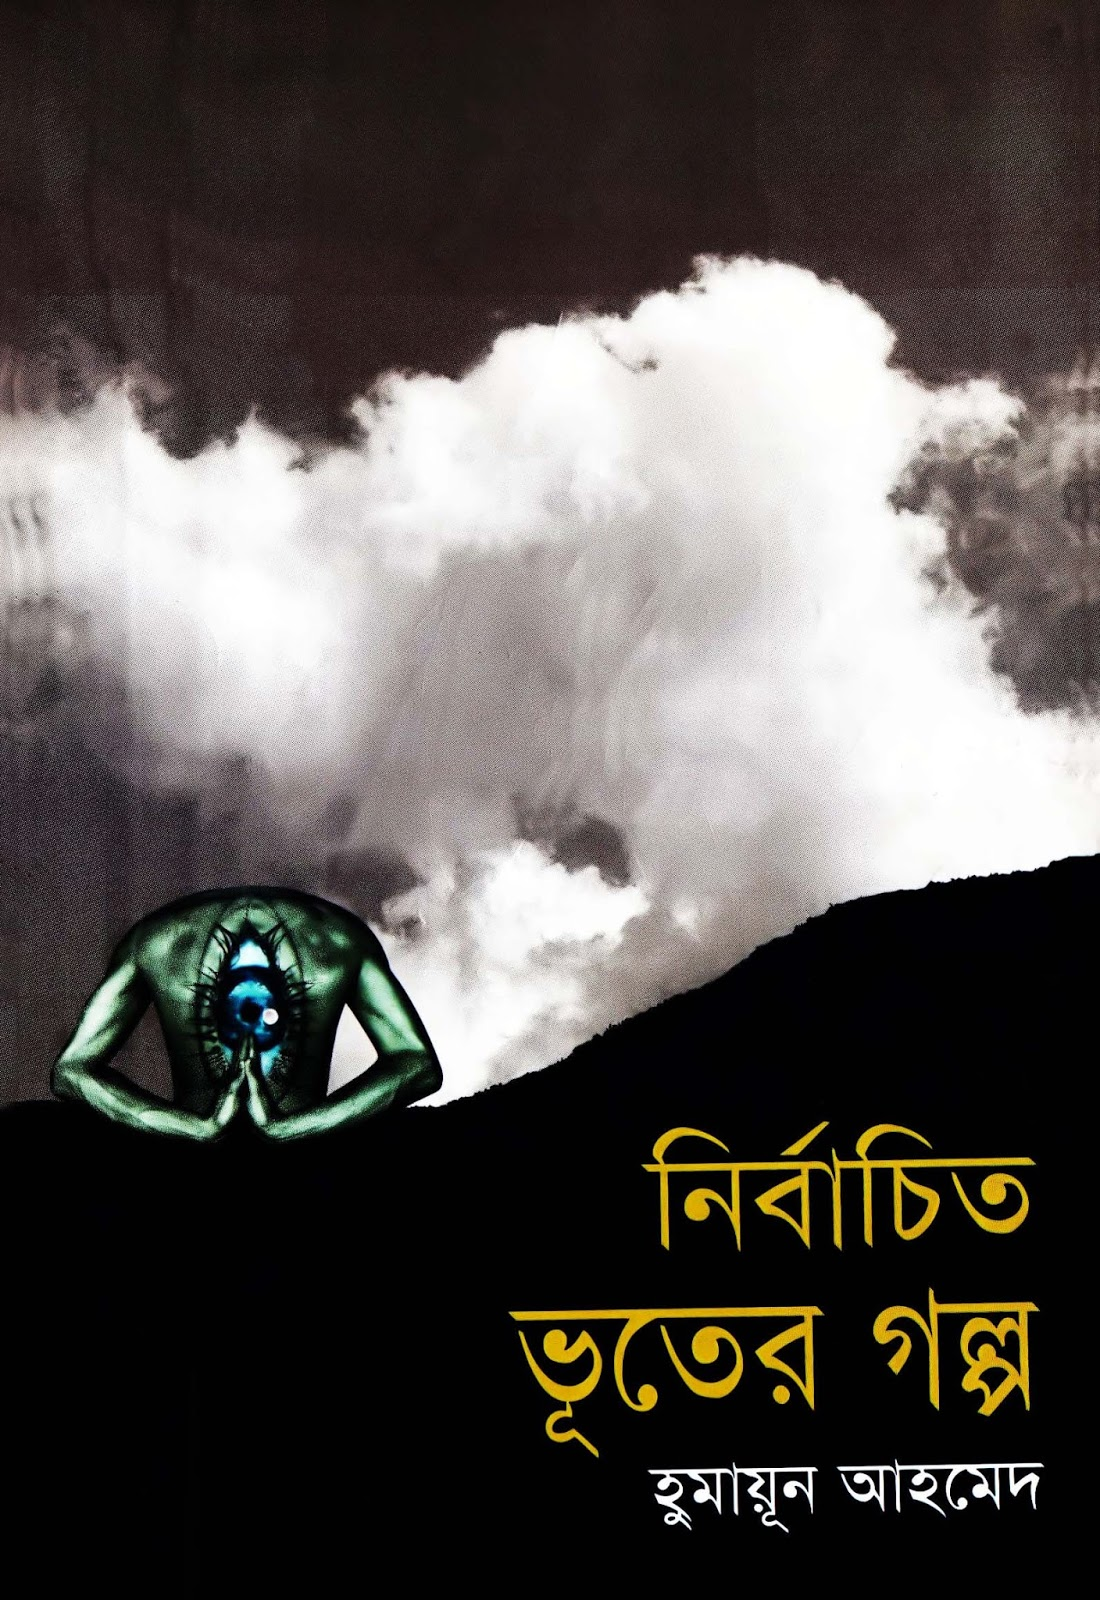 [عکس: Nirbachito+Vuter+Golpo+by+Humayun+Ahmed.jpg]